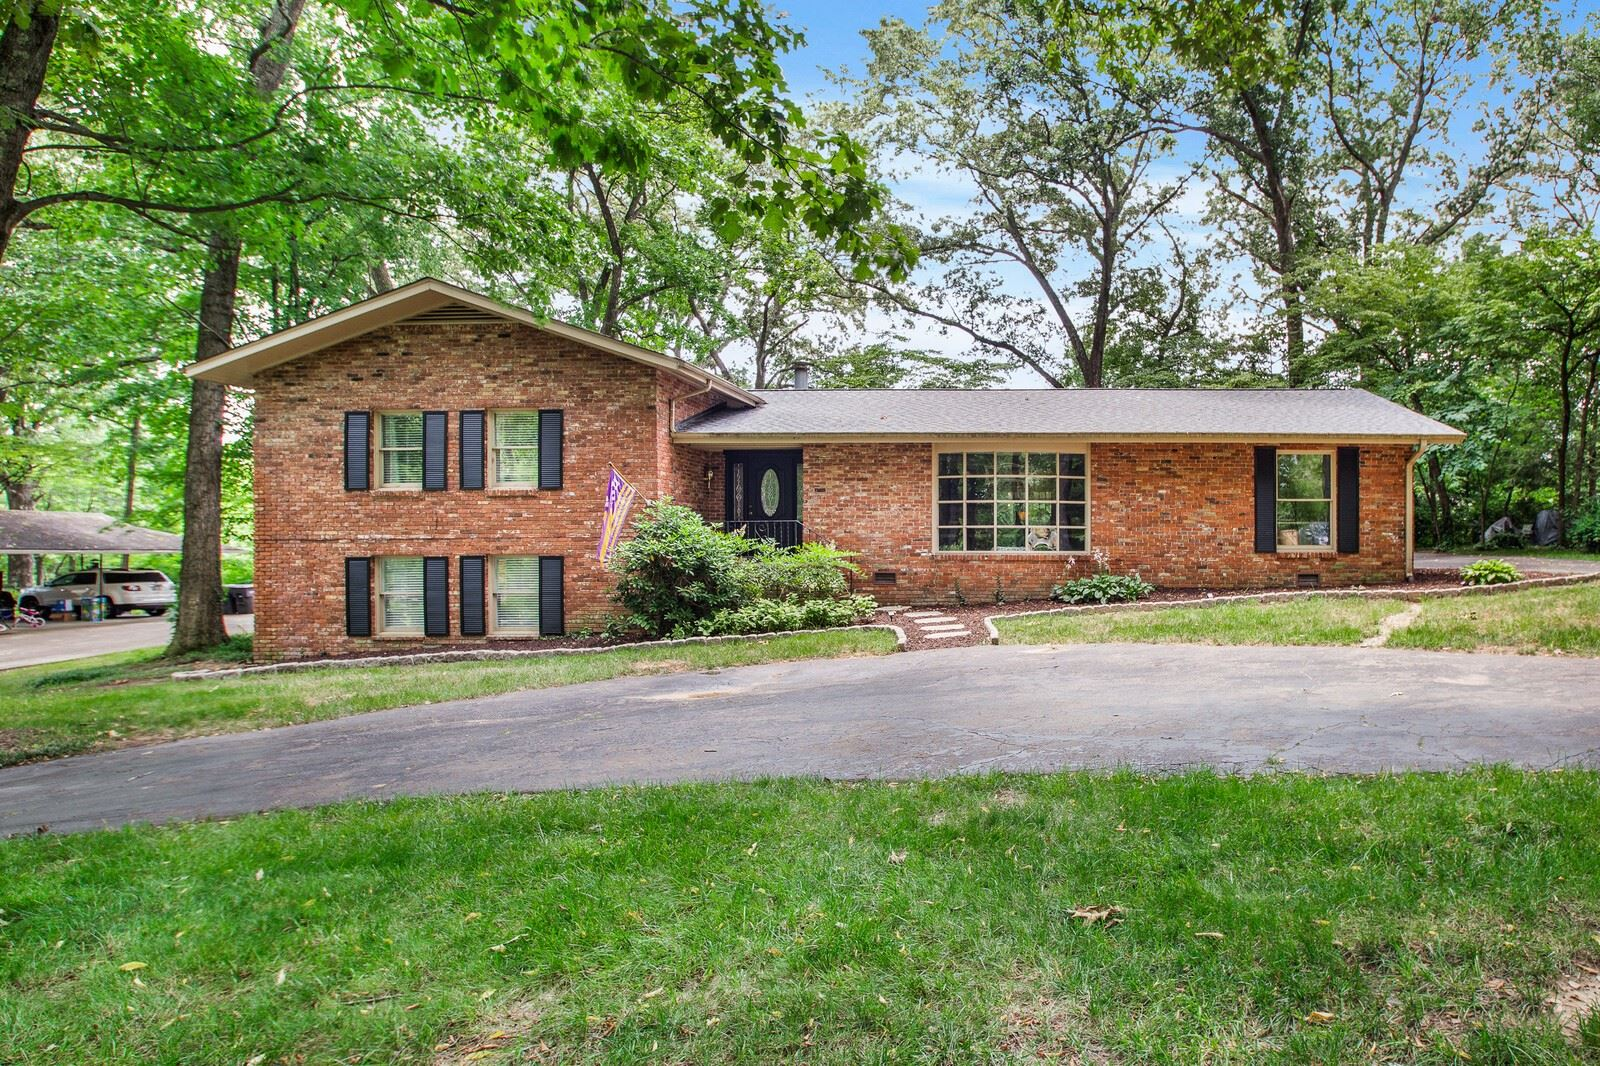 747 Timber Ln, Cookeville, TN 38501 - MLS#: 2270124